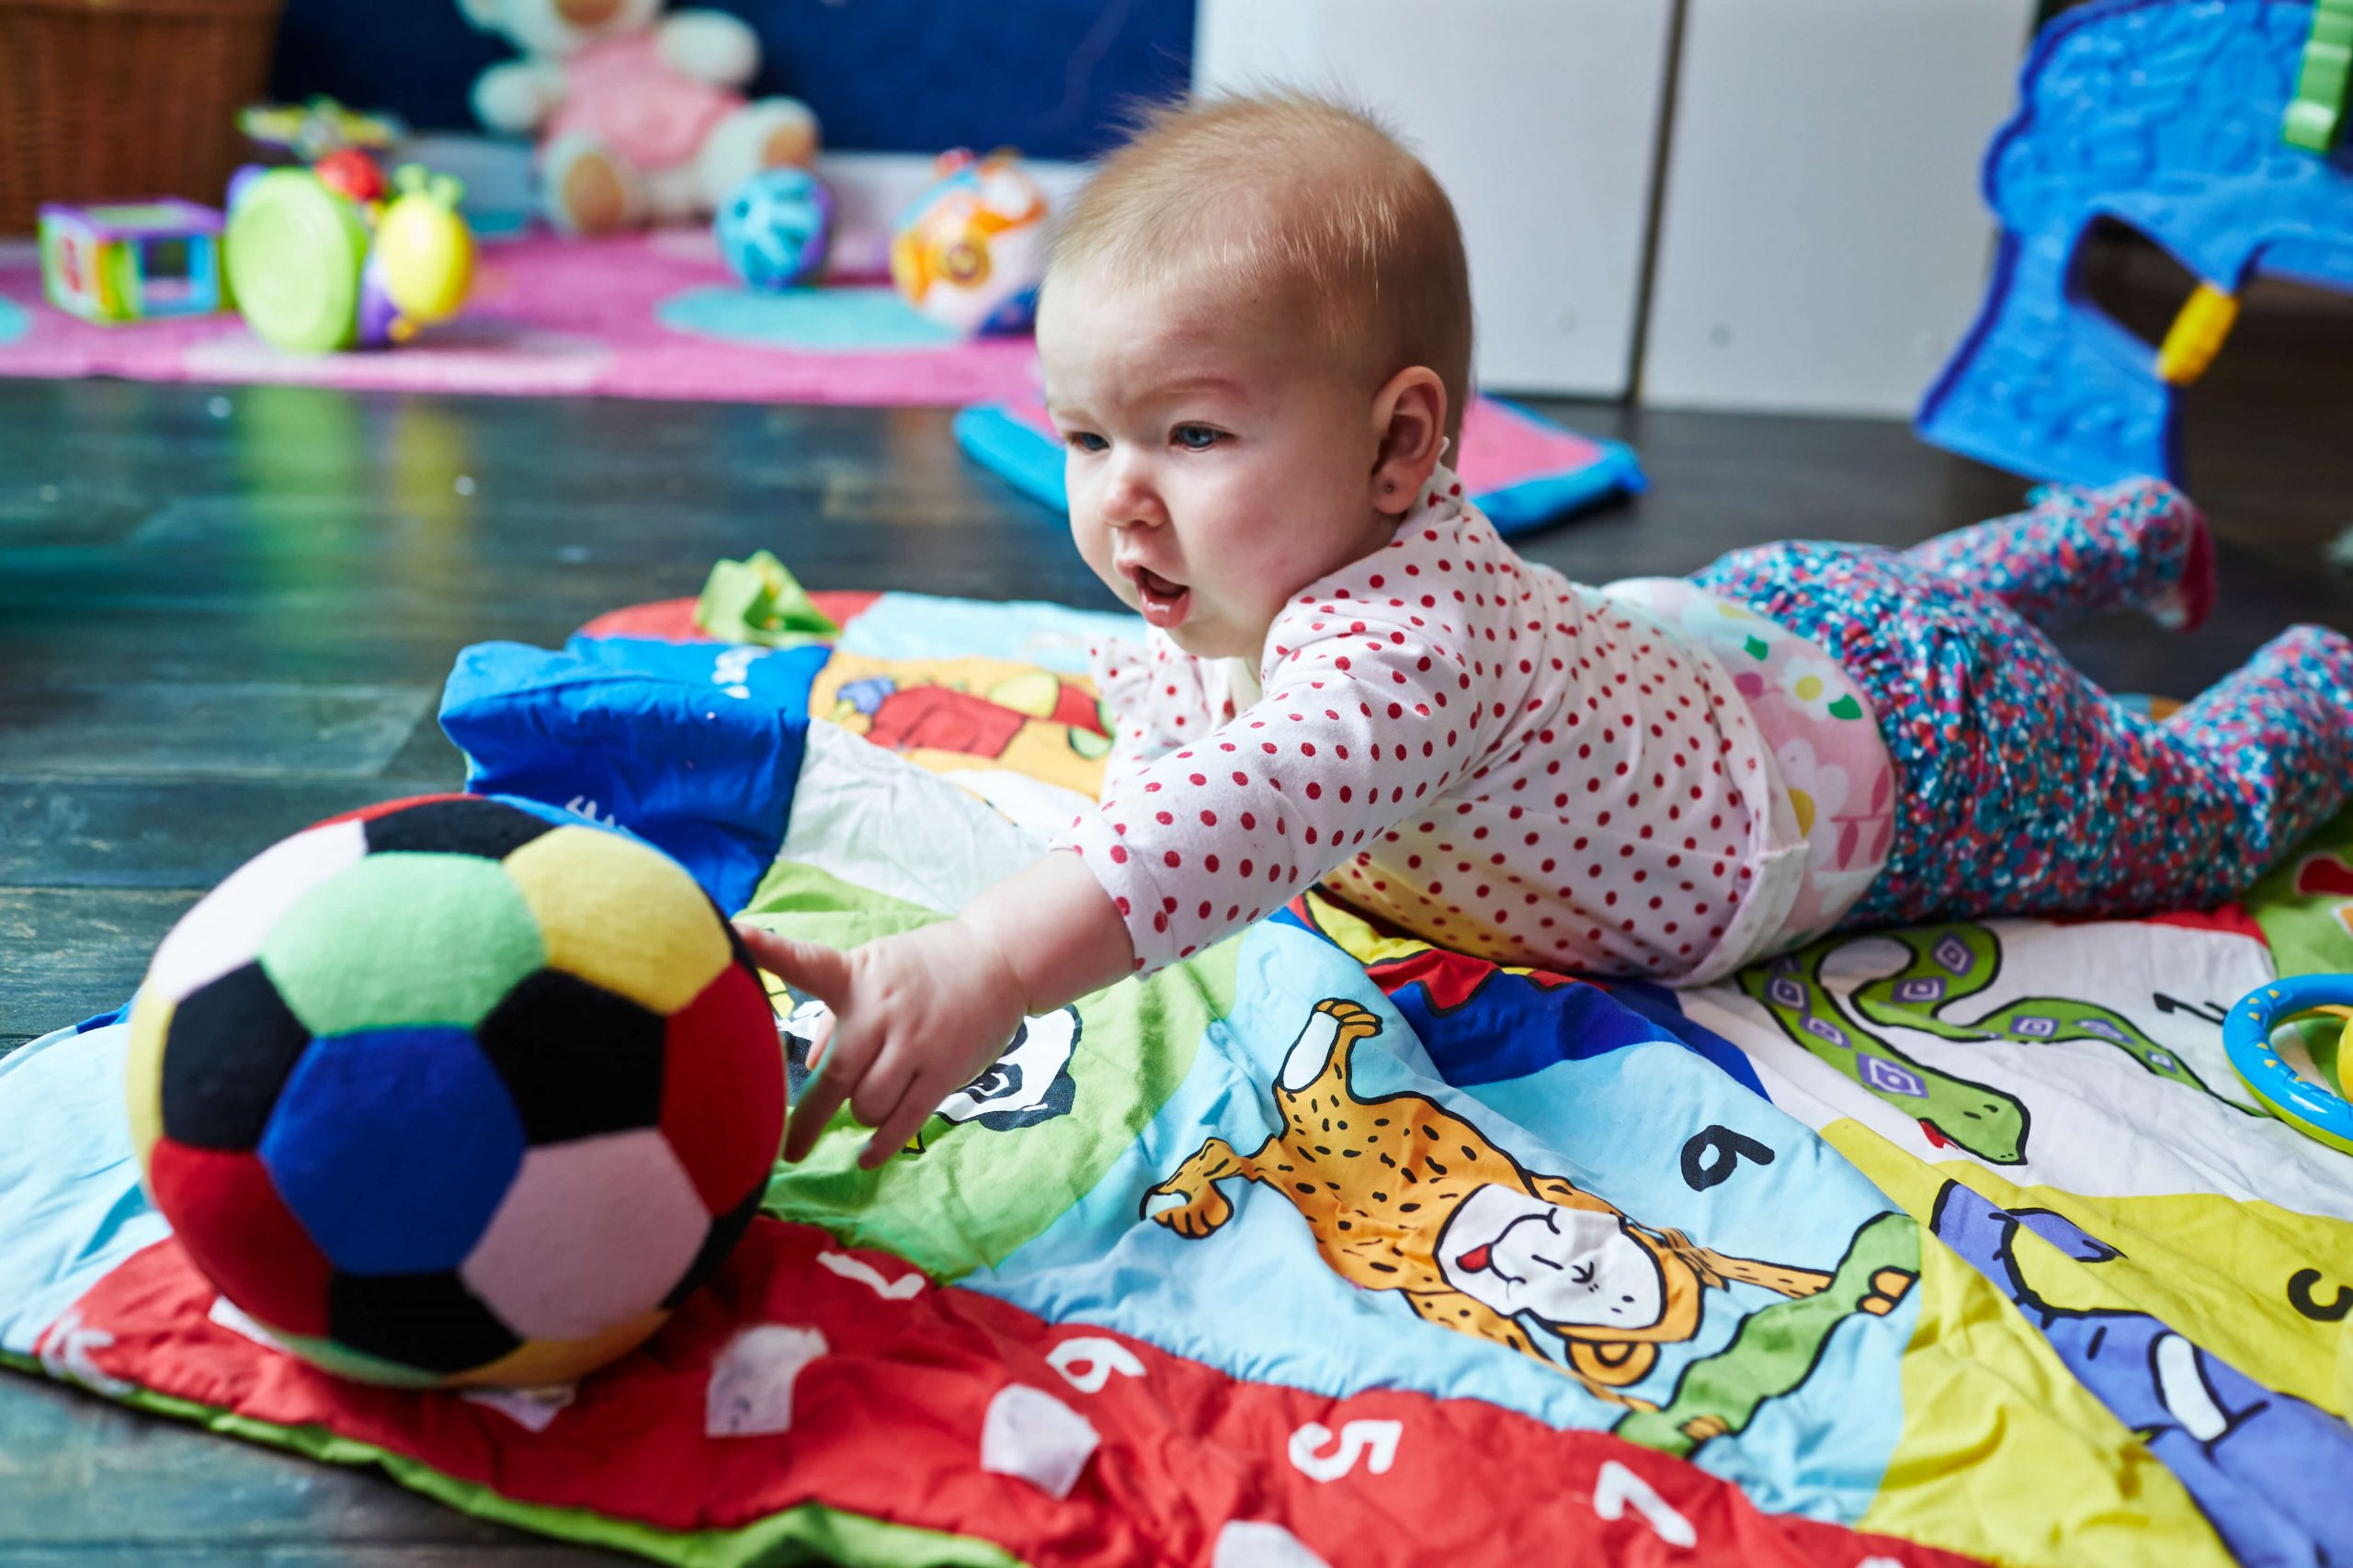 Baby reaching for ball during tummy time